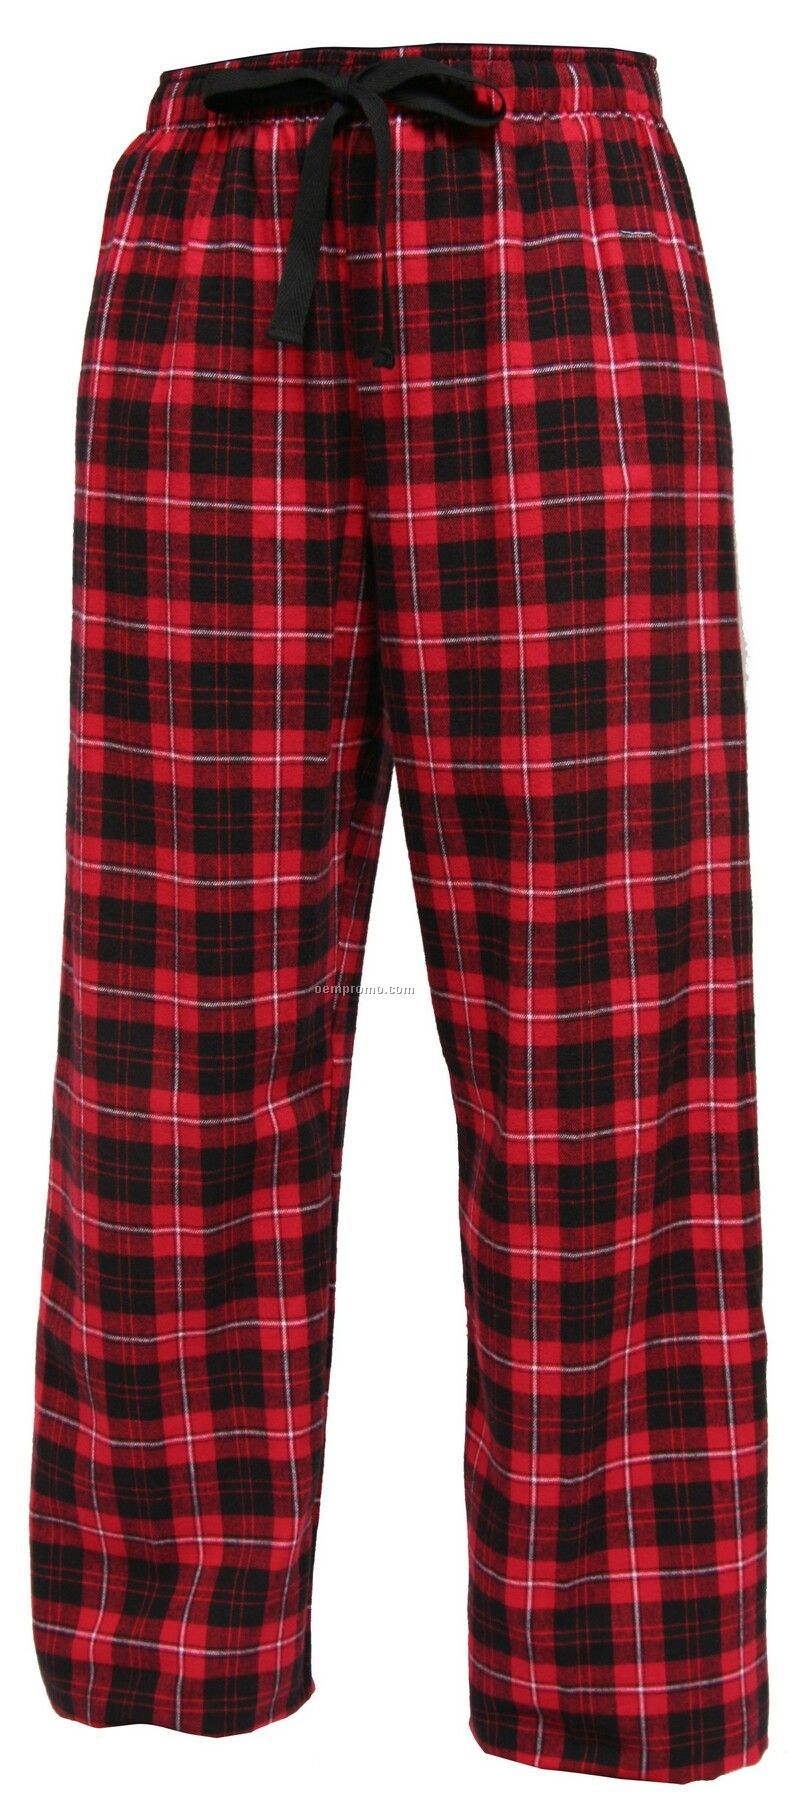 Youth Team Pride Flannel Pant In Red & Black Plaid,China Wholesale ...